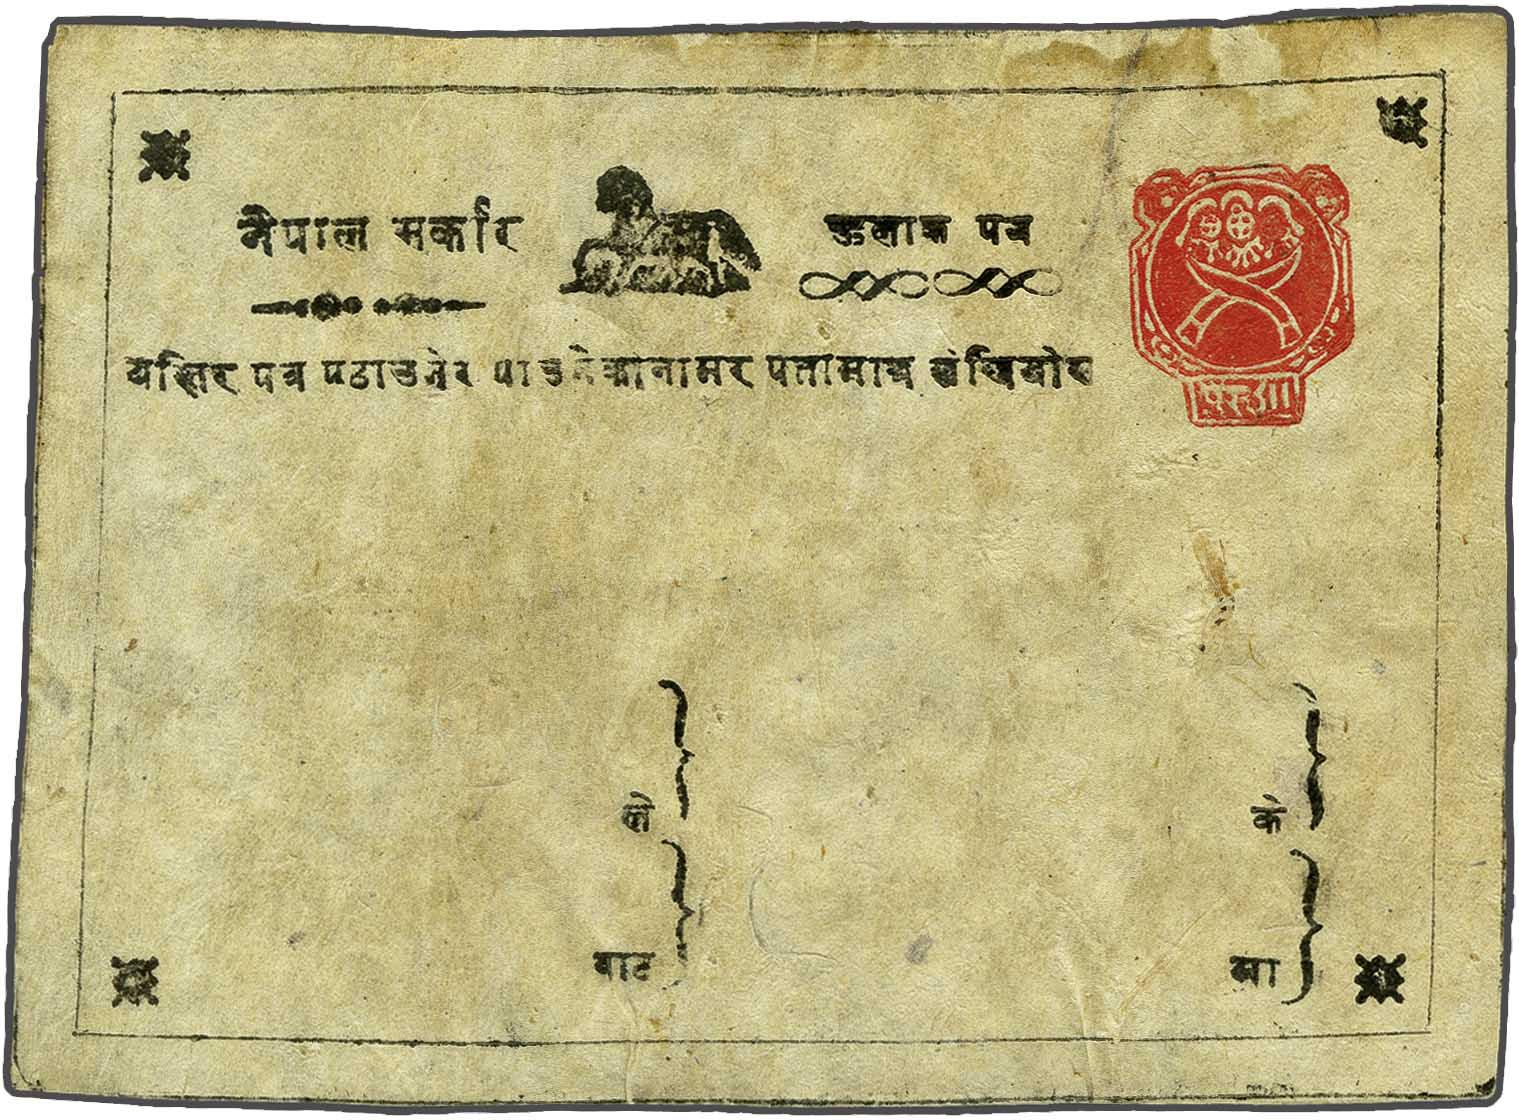 Lot 5 - Great Britain and former colonies Nepal -  Corinphila Veilingen Auction 245-246 Day 1 - Nepal - The Dick van der Wateren Collection, Foreign countries - Single lots, Picture postcards